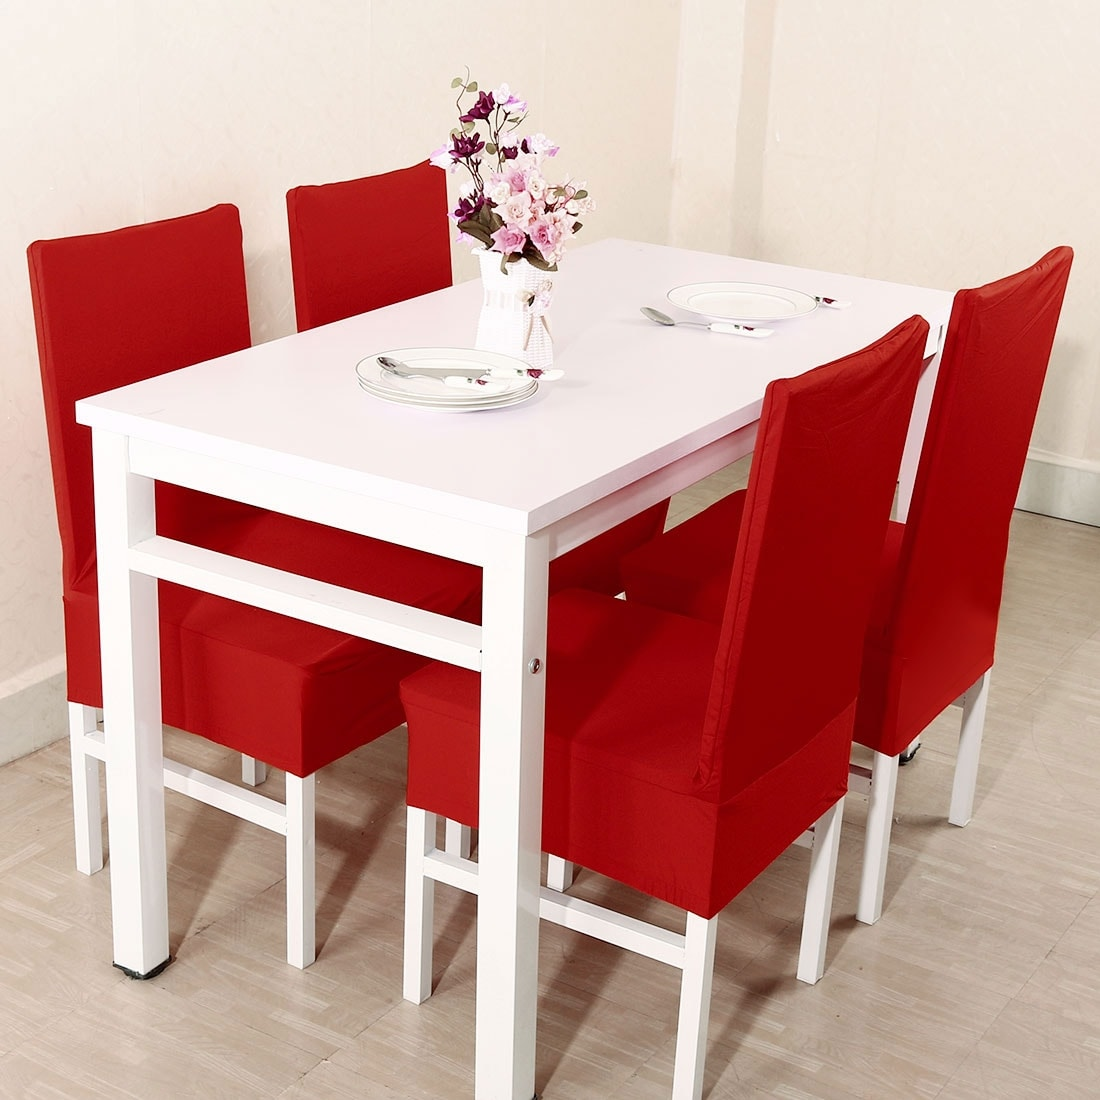 Stupendous Unique Bargains Red Spandex Stretch Washable Dining Chair Cover Gmtry Best Dining Table And Chair Ideas Images Gmtryco